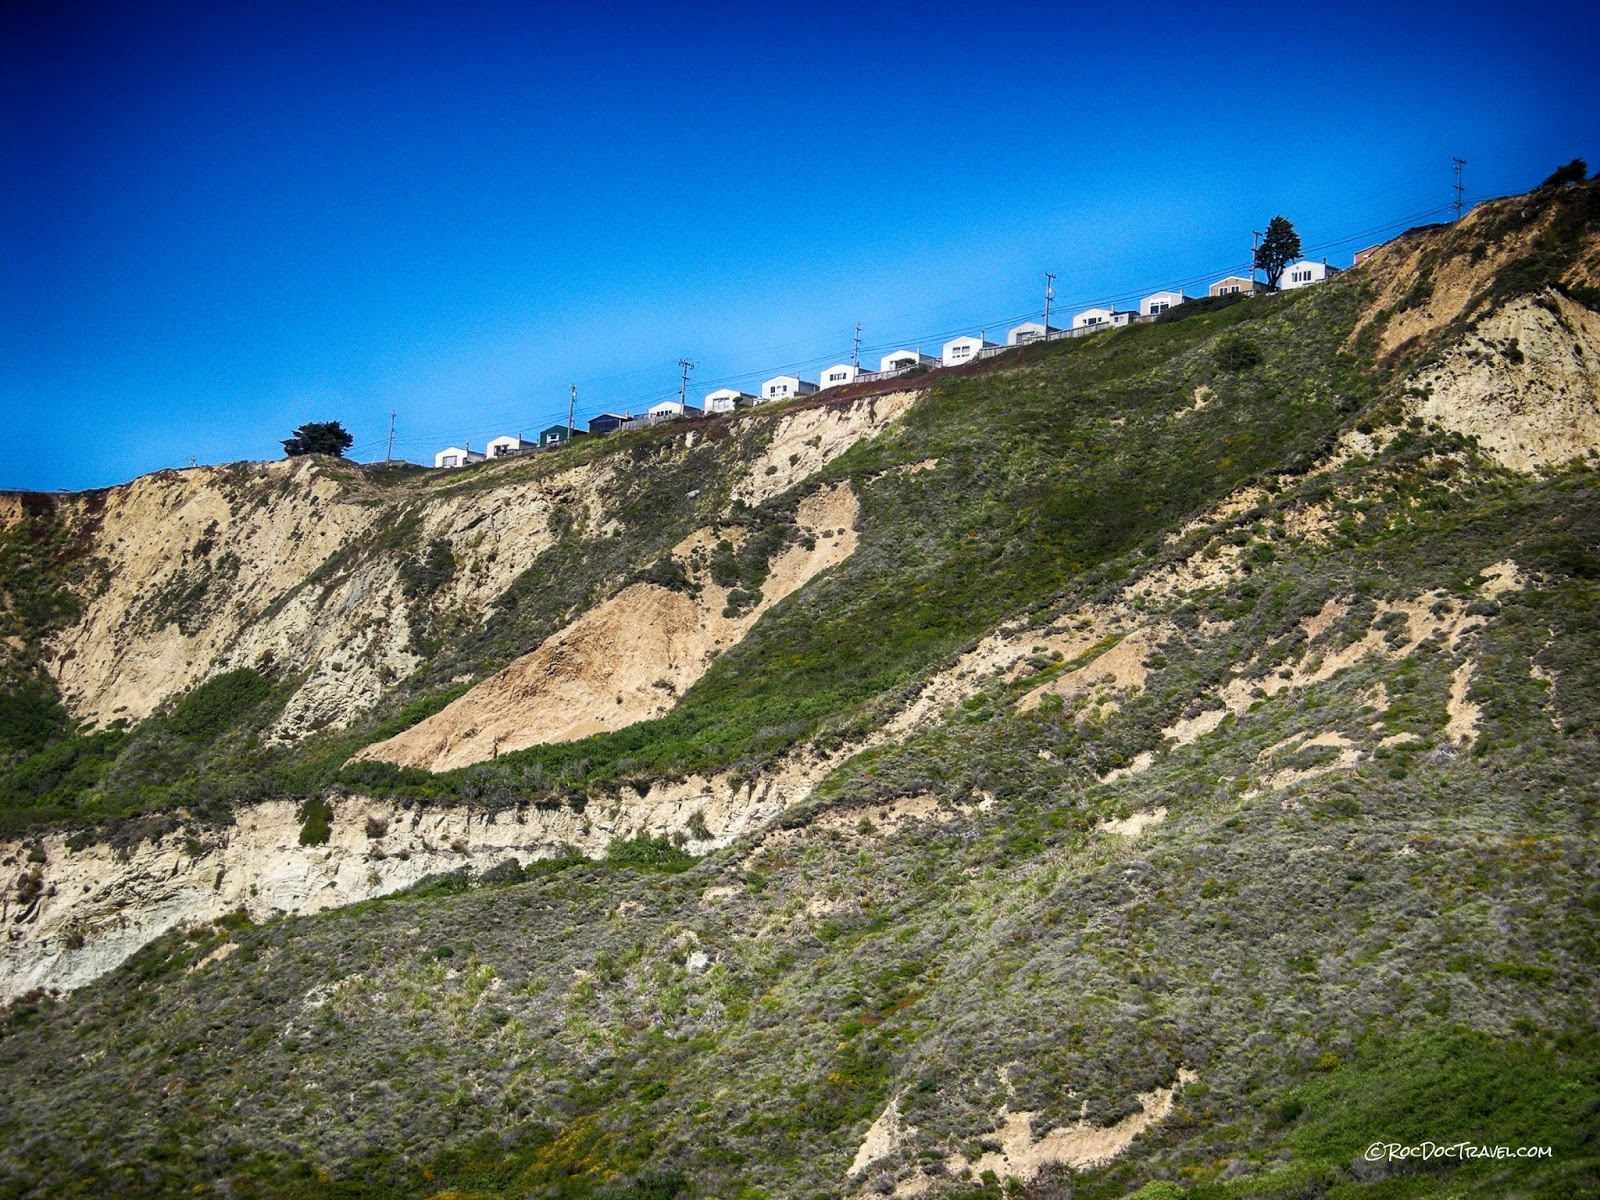 California landslide flood geology travel trip Eel River San Francisco coast Palos Verdes San Andreas copyright RocDocTravel.com